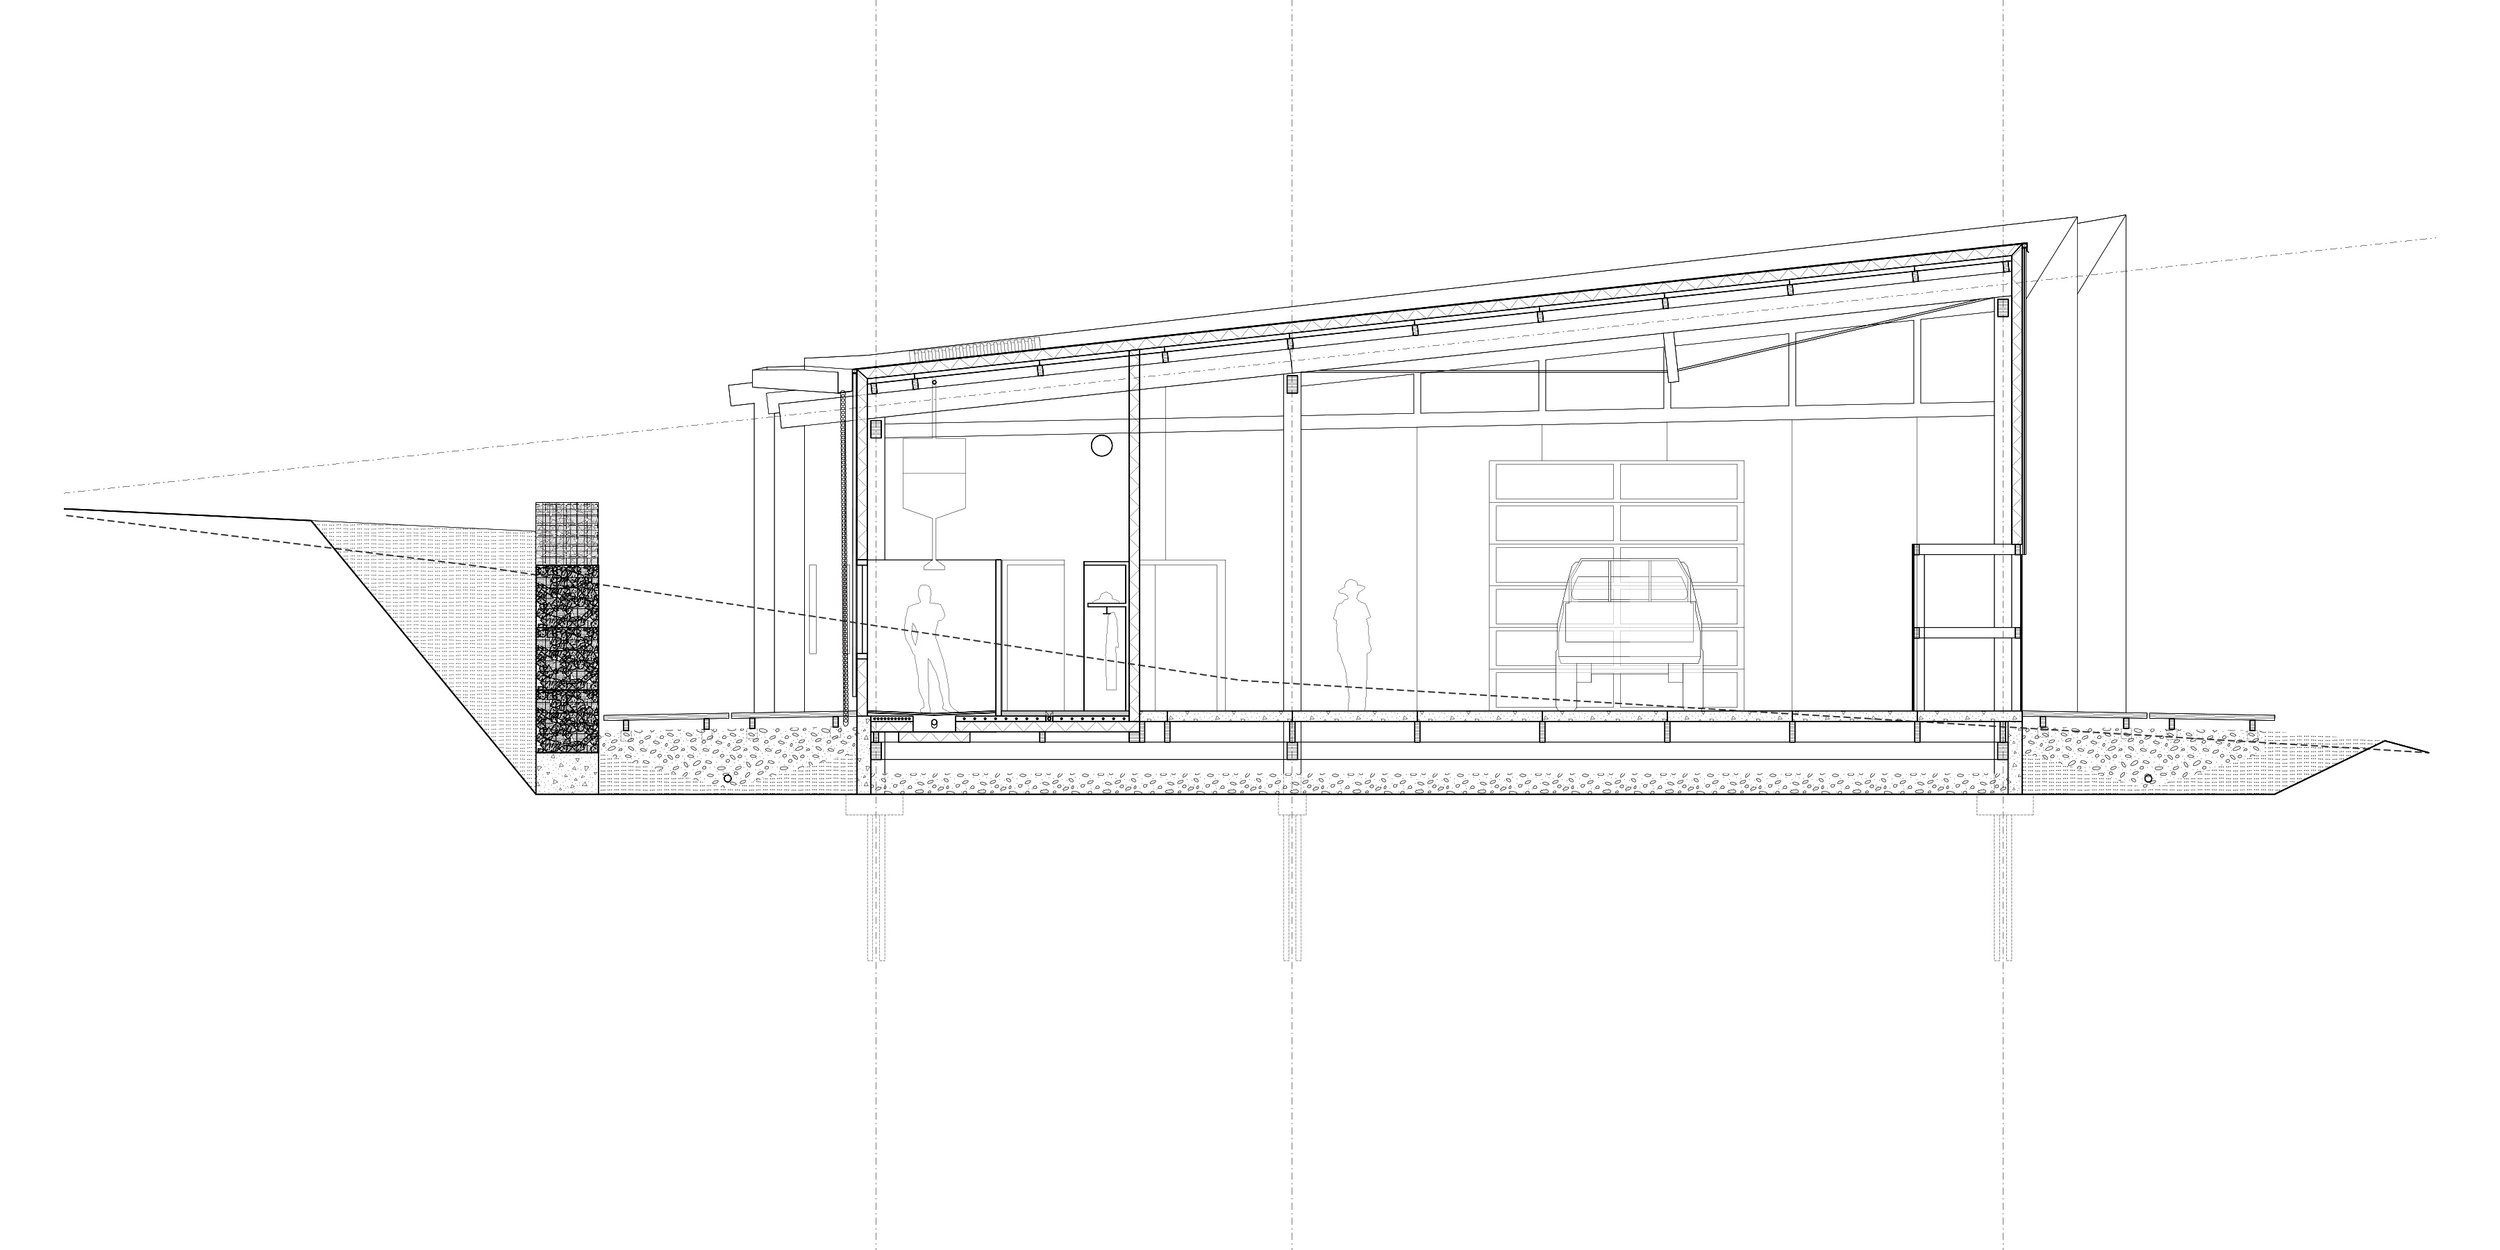 Detail section through hub—locker rooms and garage.